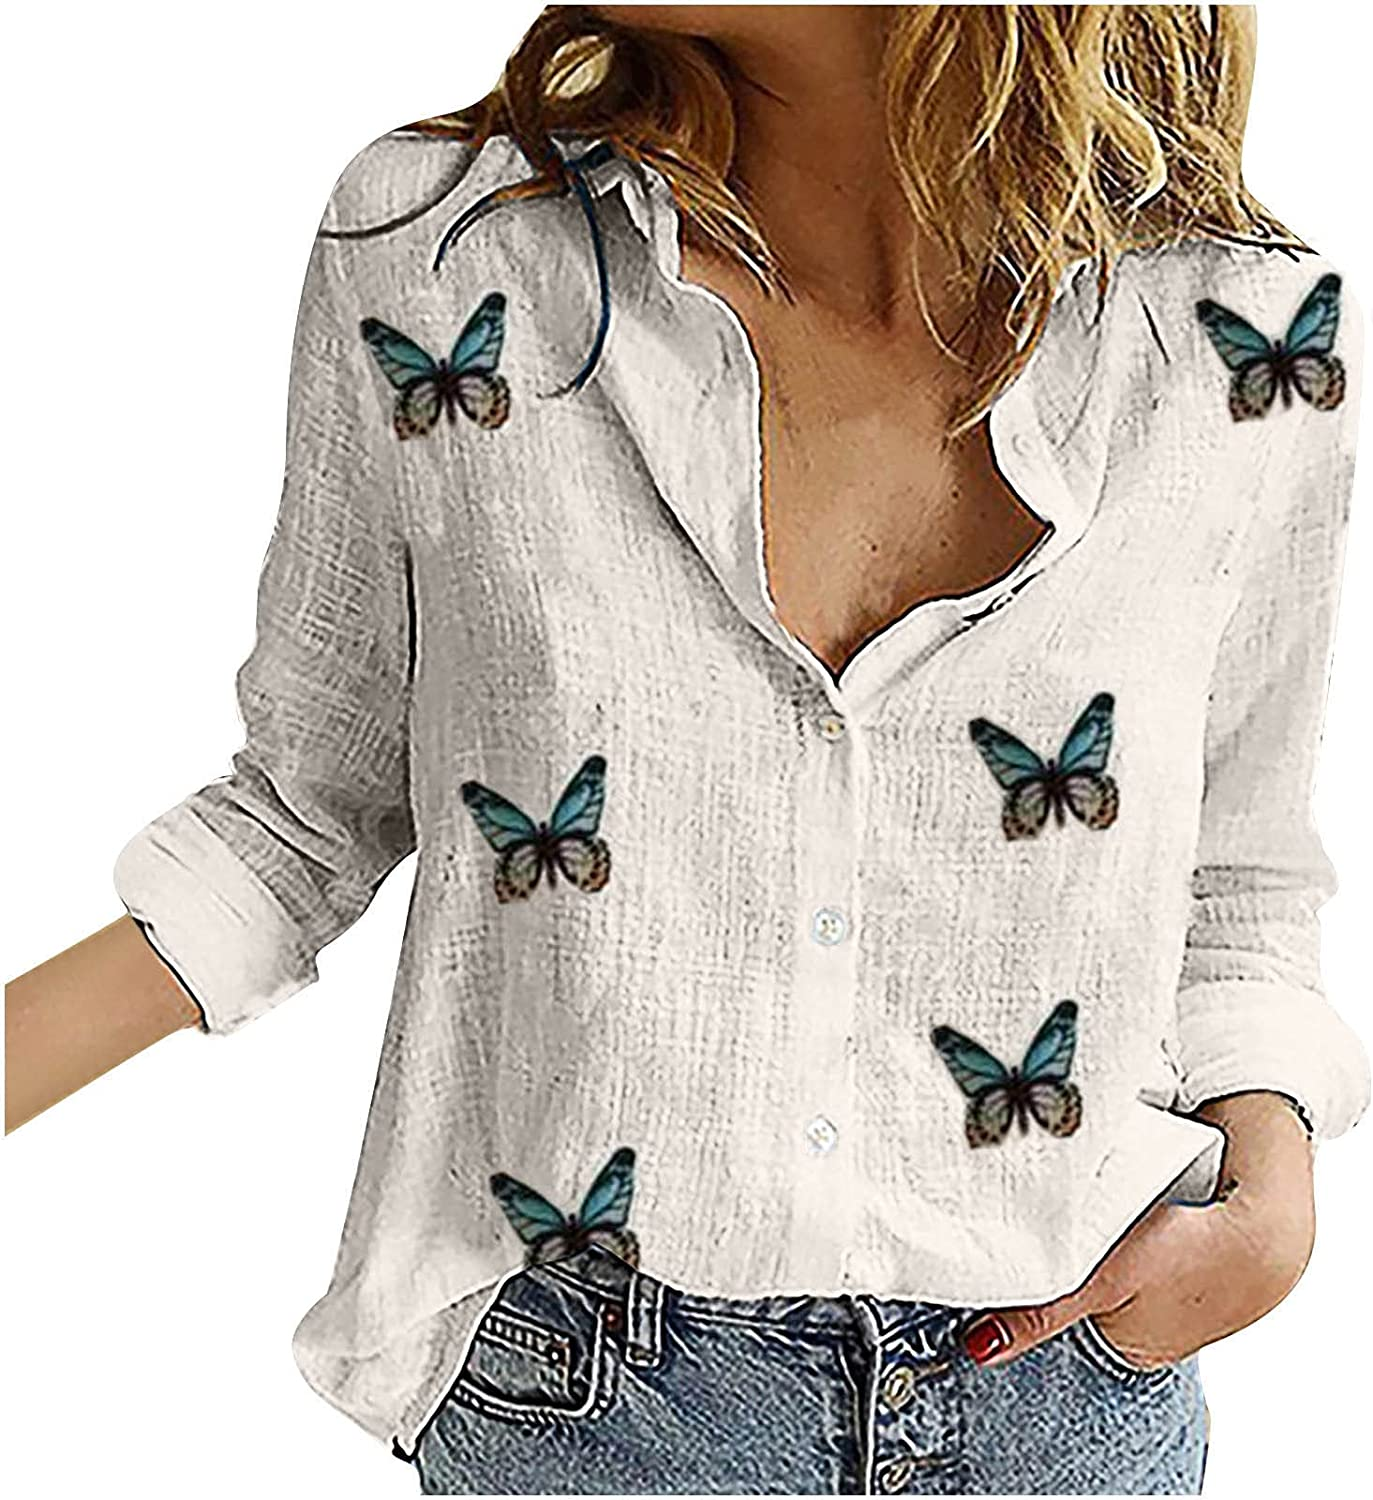 Womens Summer Linen Button Down Shirts Fashion Casual Sunflower and Butterfly Print Long Sleeve Loose Tops Blouse